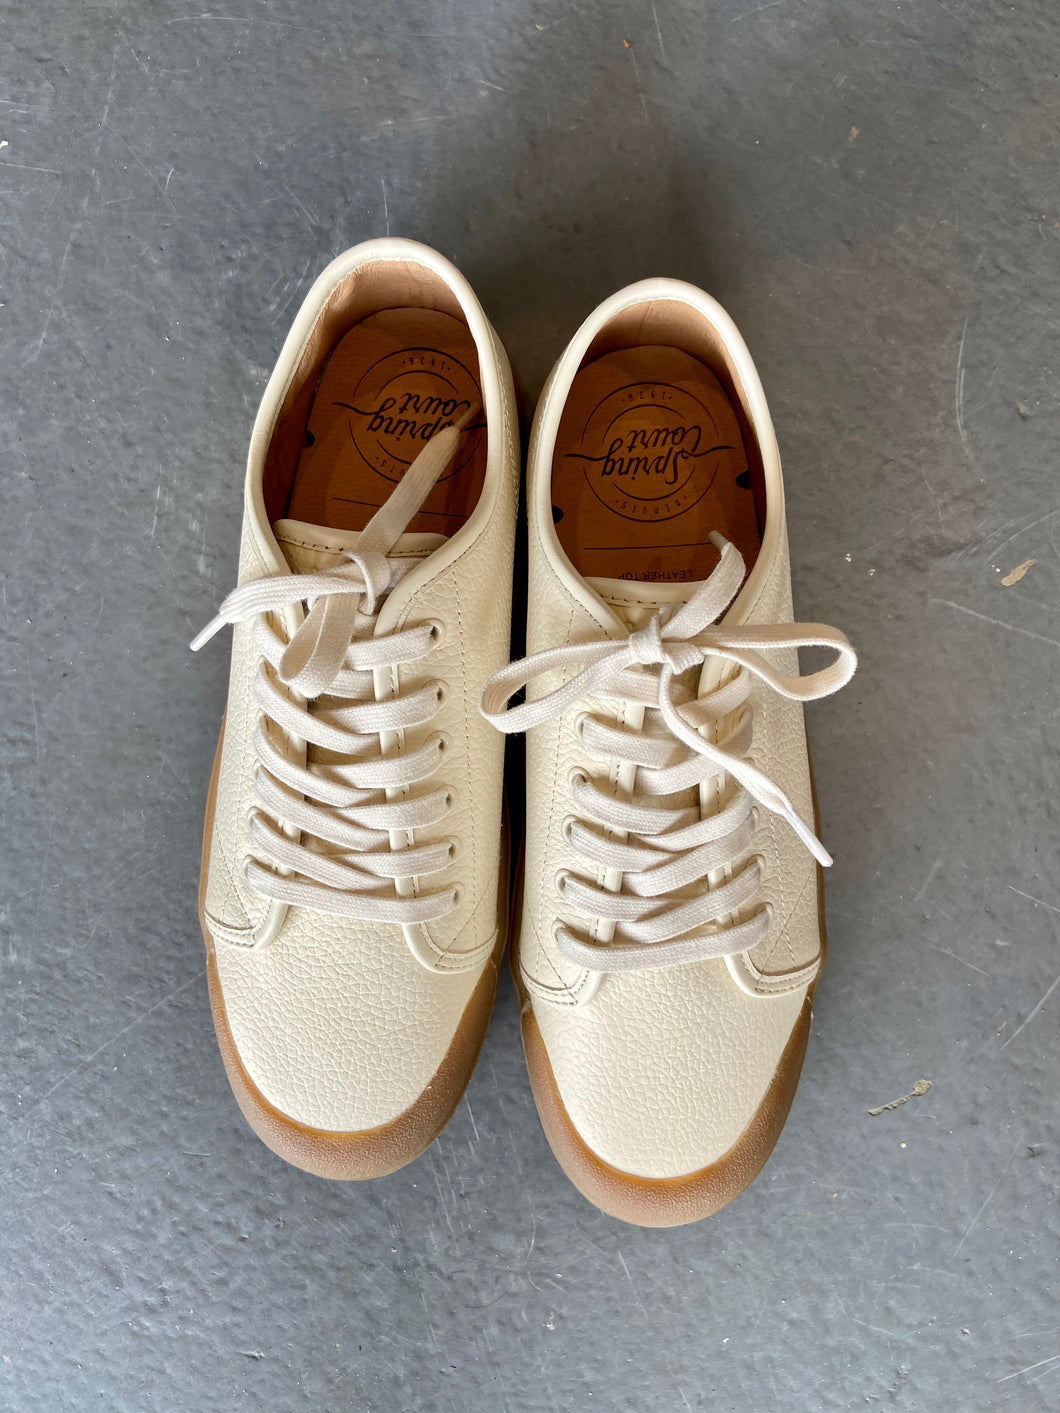 Springcourt G2 Grainy Nappa Leather white with Gum Sole